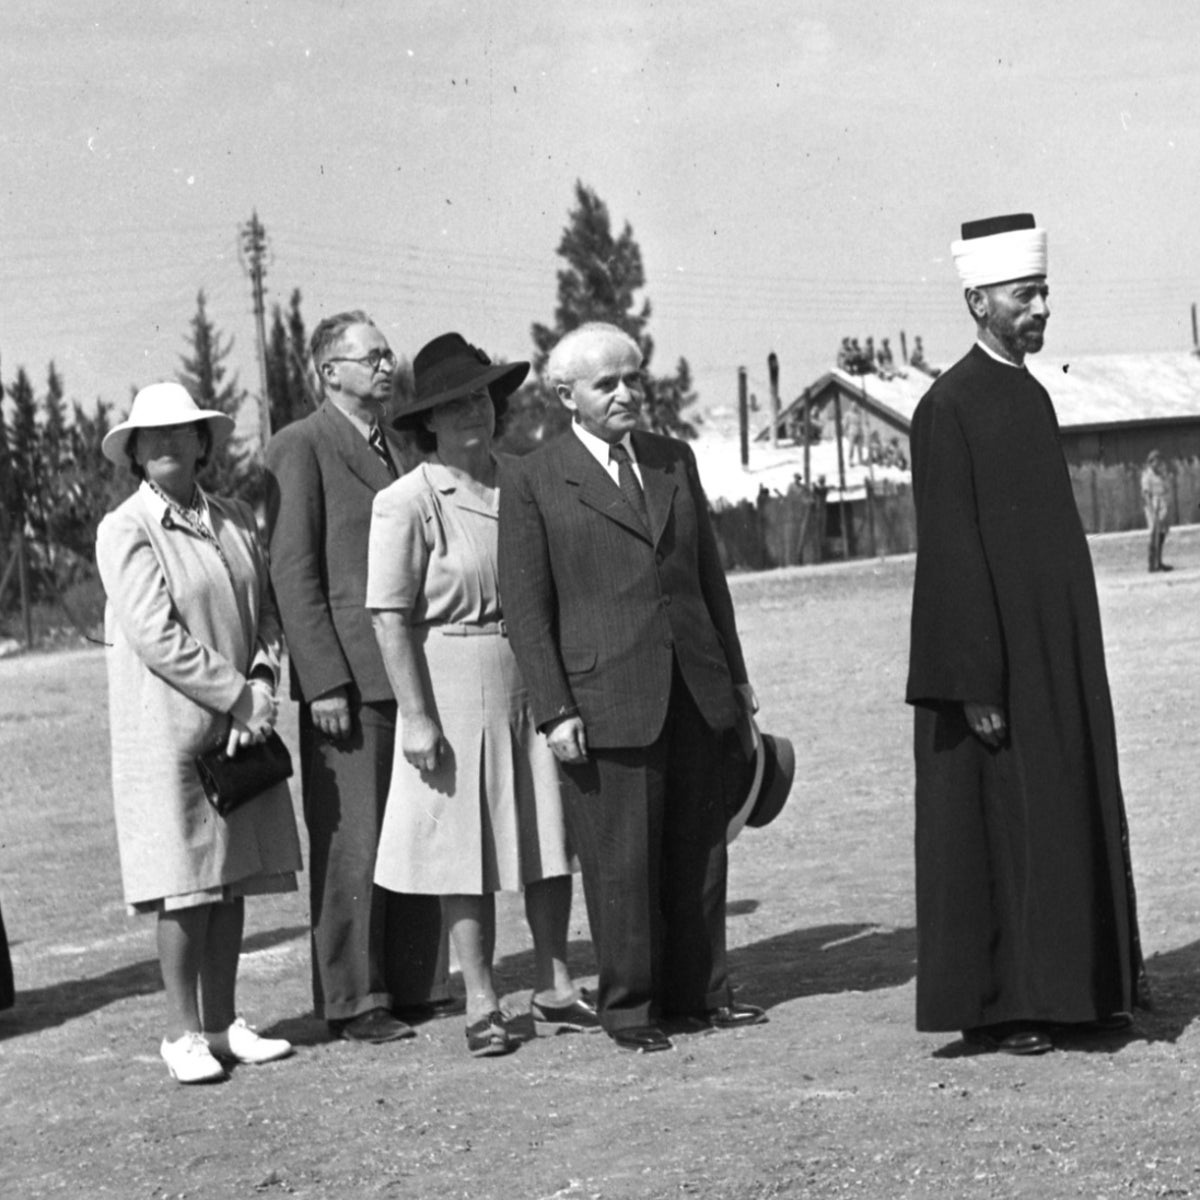 Arab and Jewish leaders standing in line at an official reception.